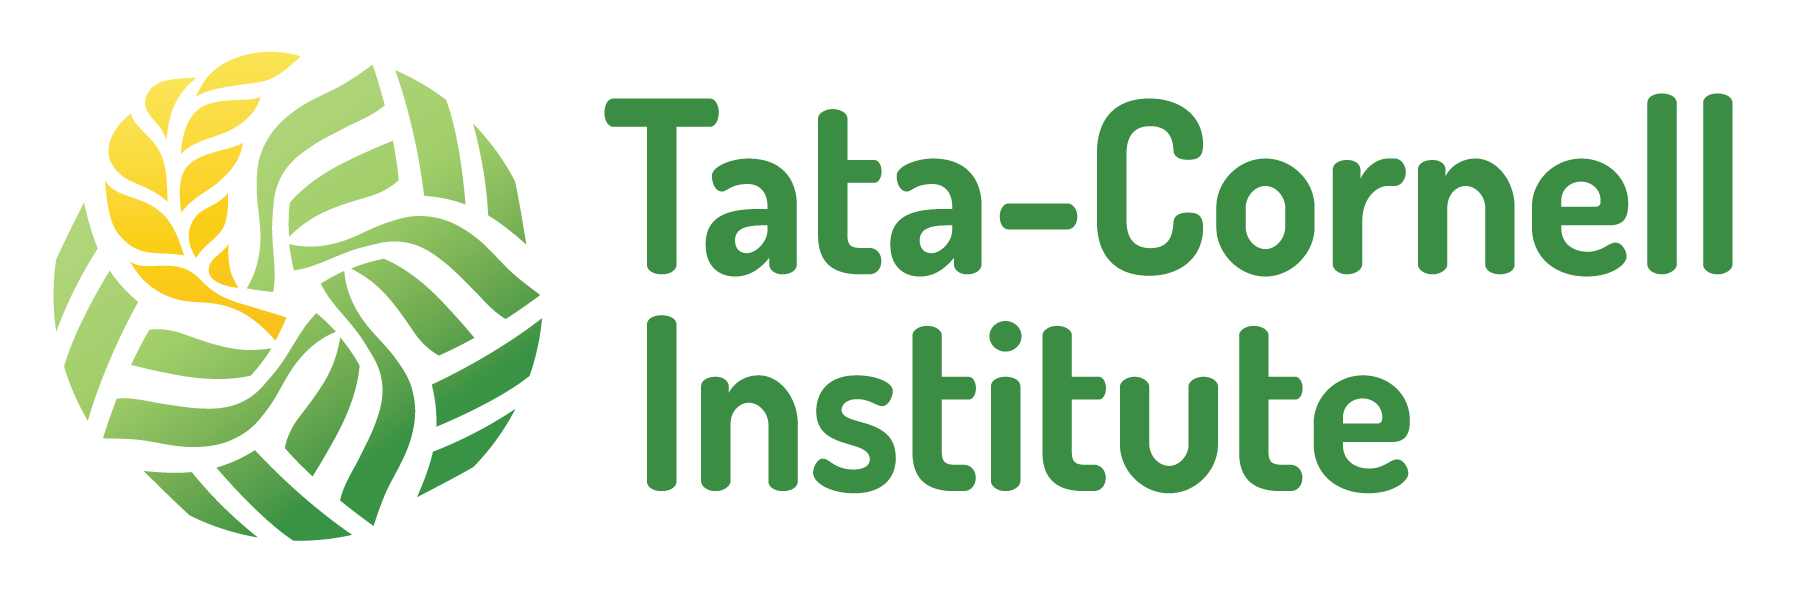 Tata-Cornell Institute for Agriculture and Nutrition